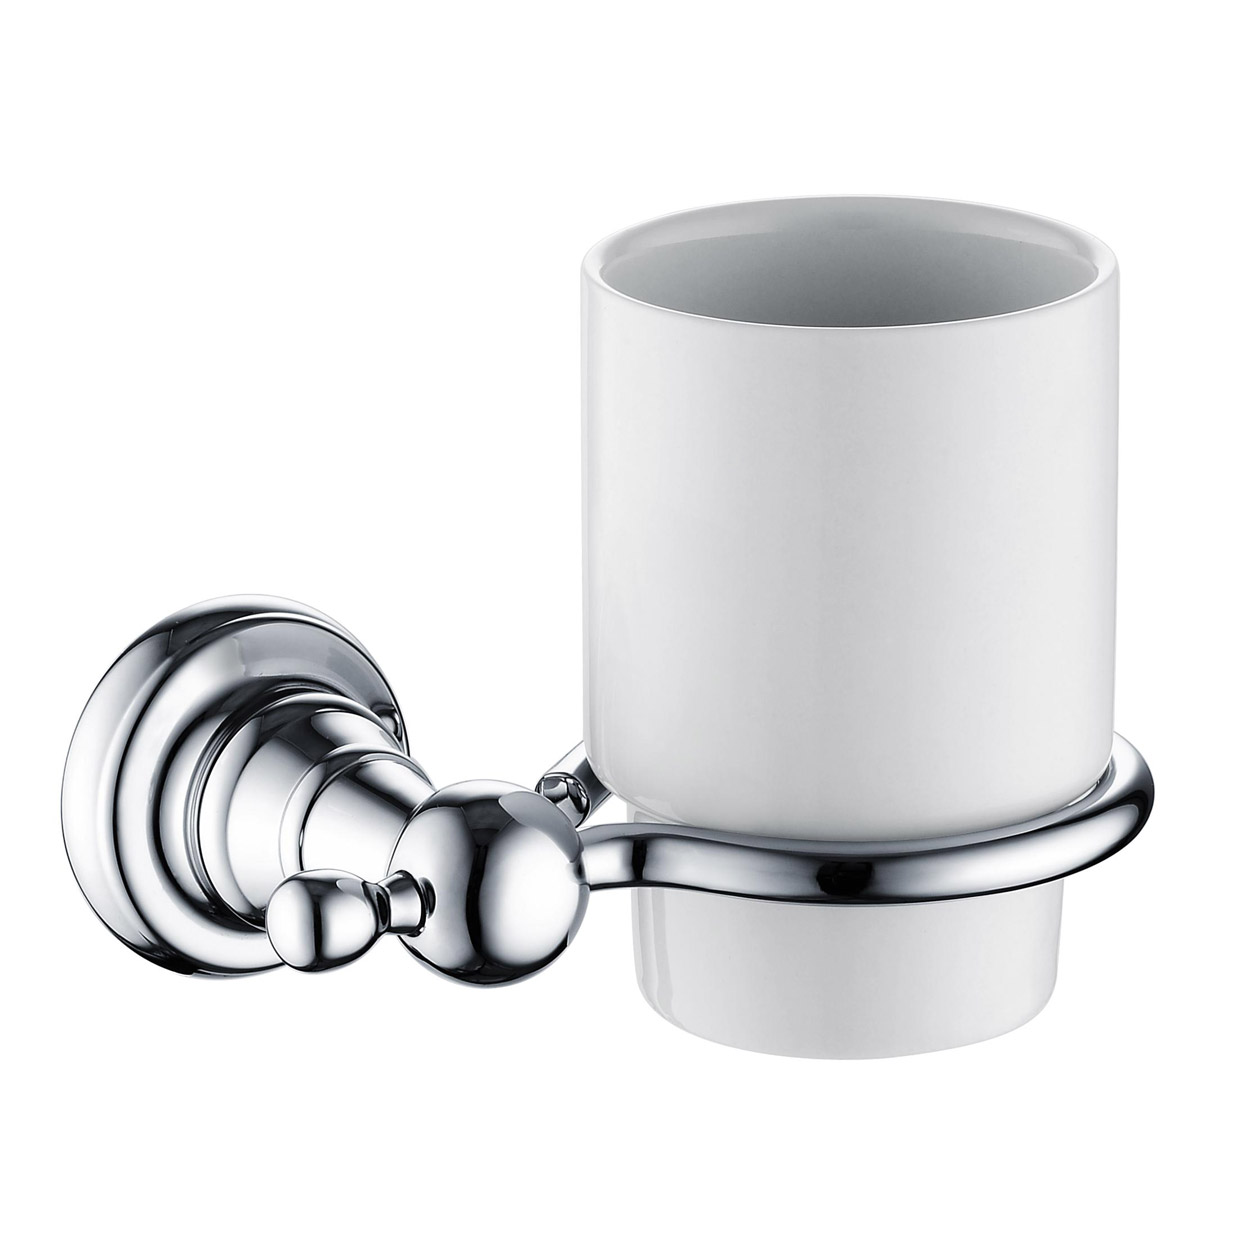 Bristan 1901 Tumbler & Brass Holder, Chrome Plated